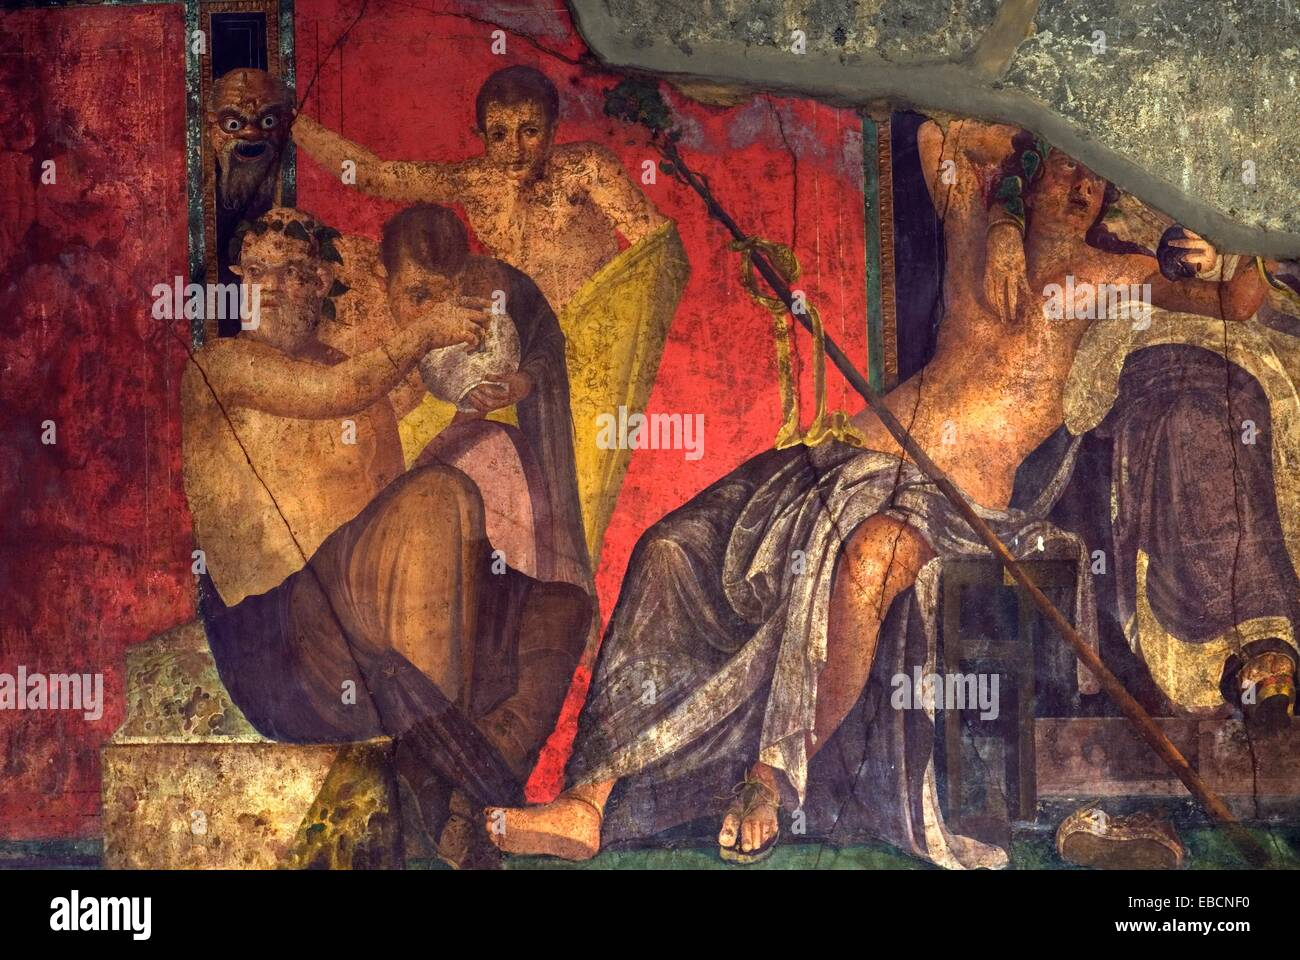 fresco inside the Villa of the Mysteries, archeological site of Pompeii, province of Naples, Campania region, southern - Stock Image